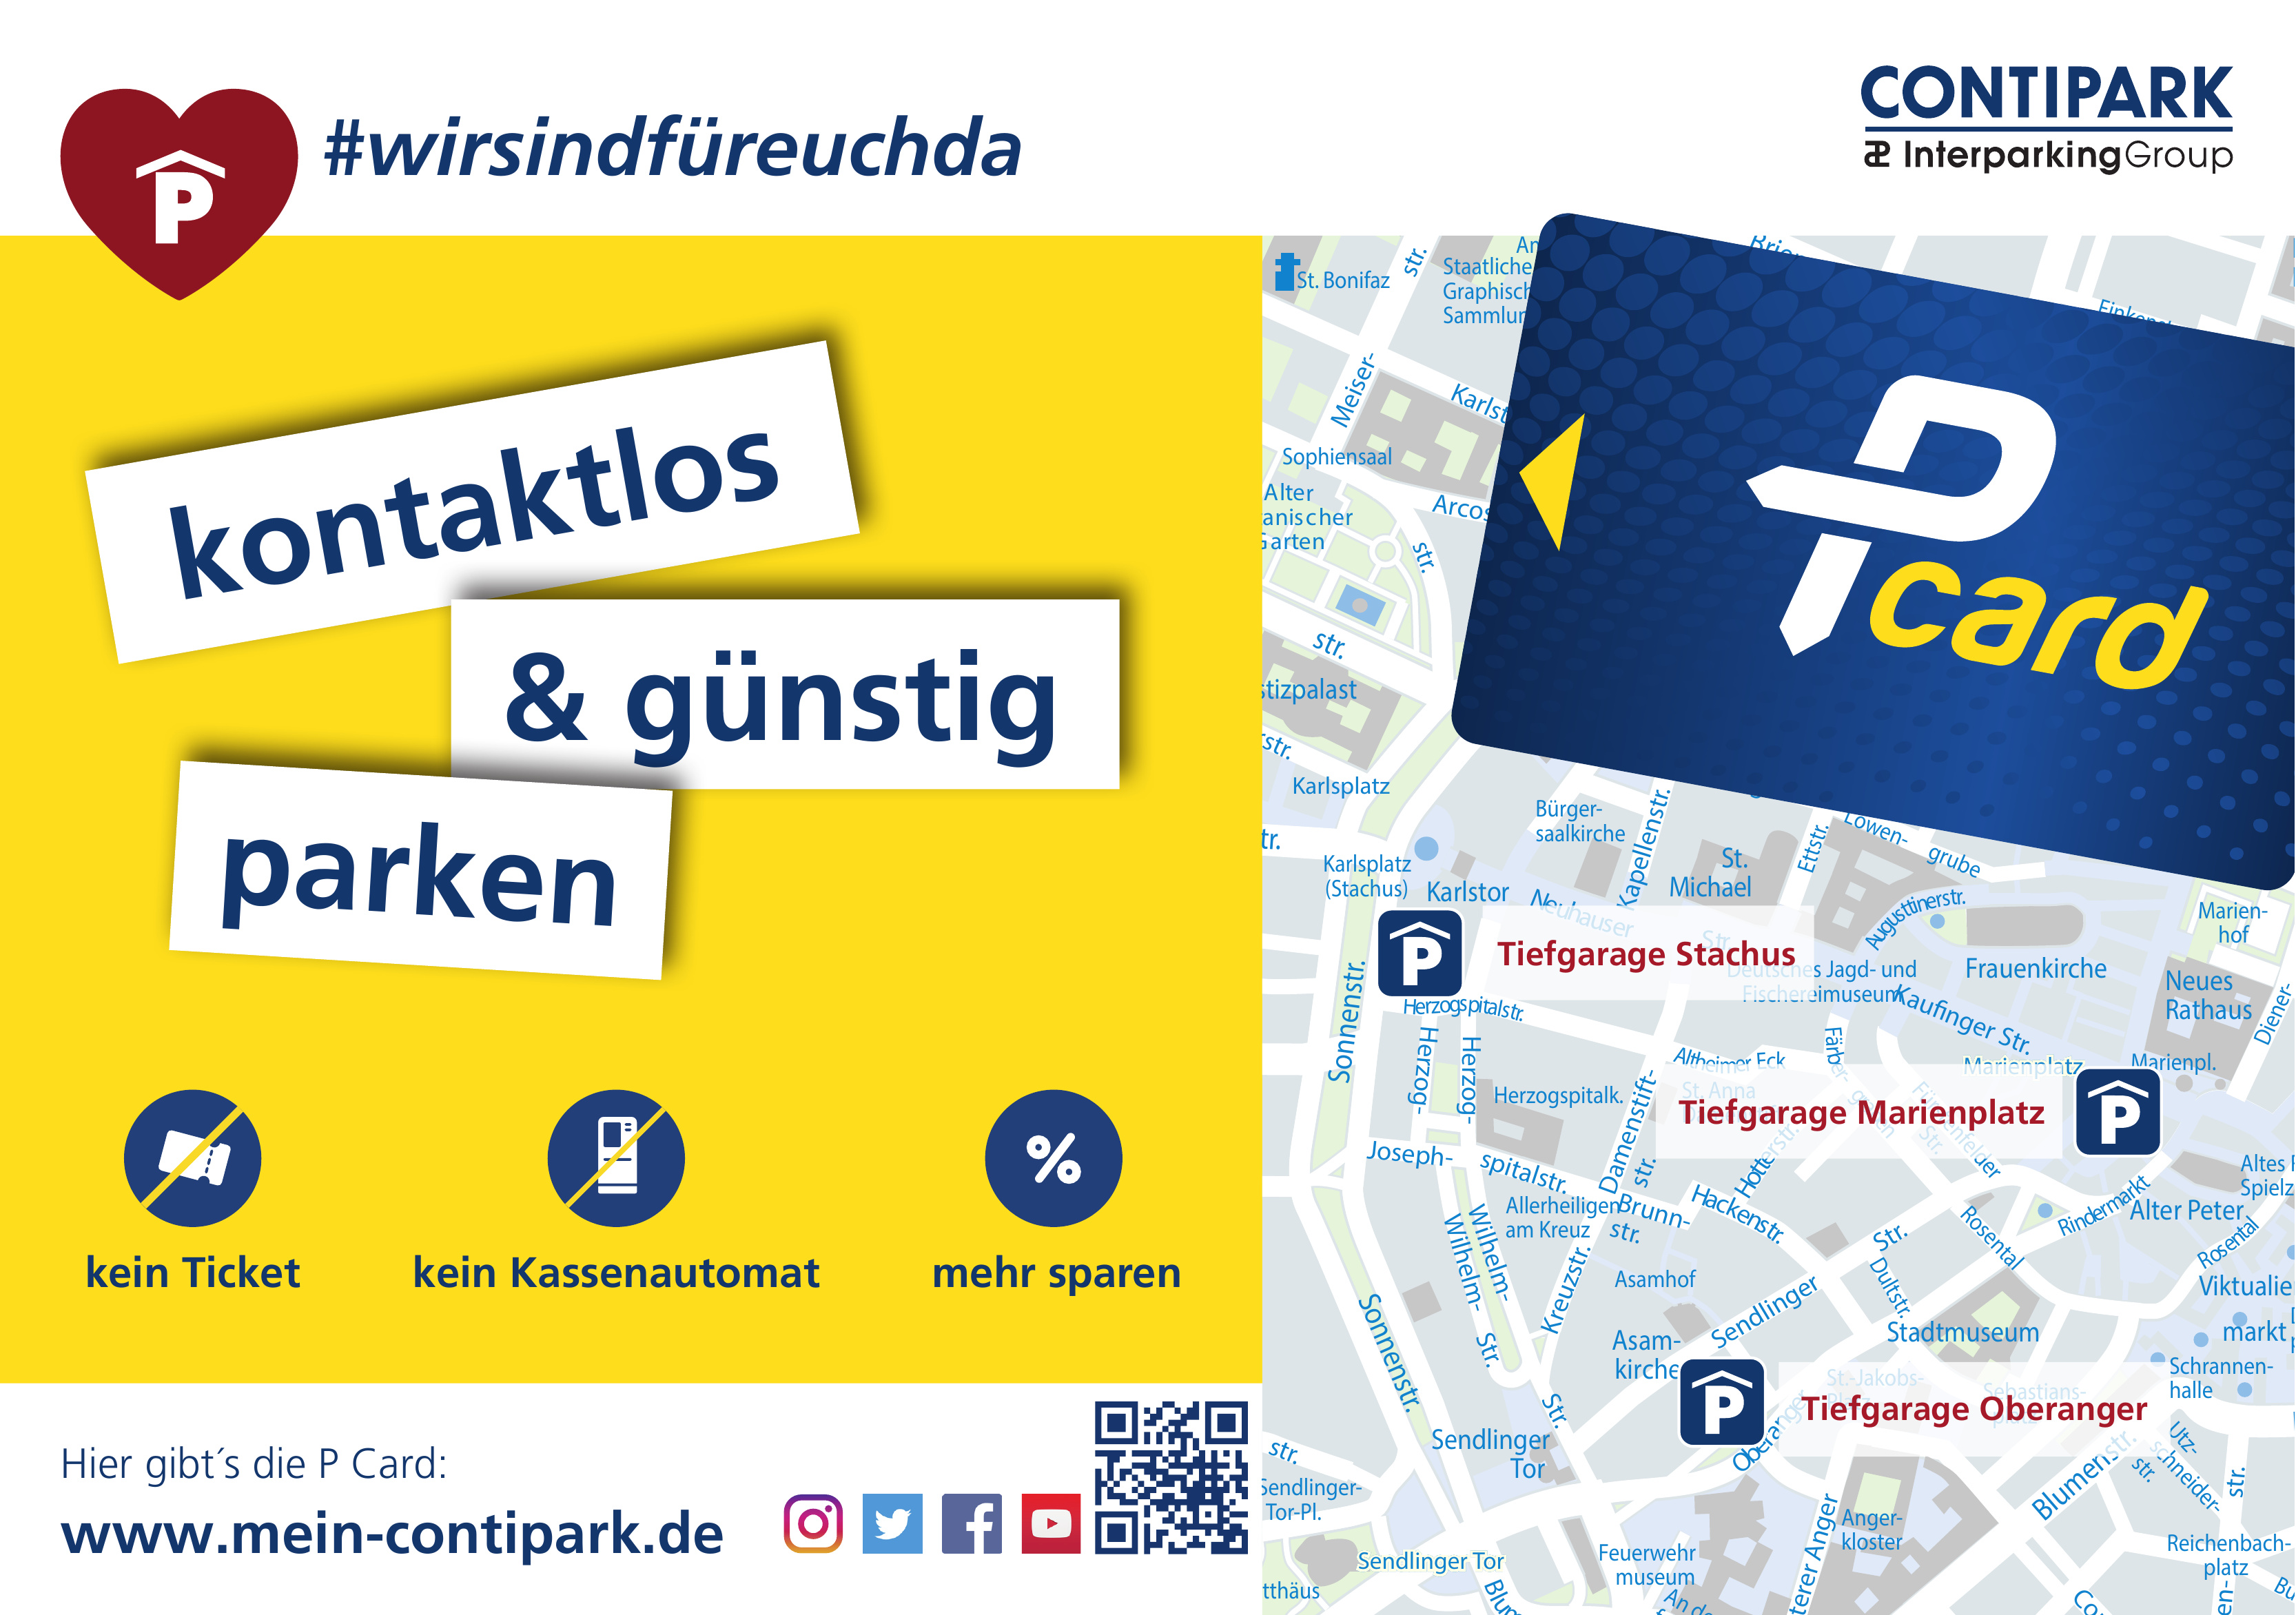 Contipark Interparking Group